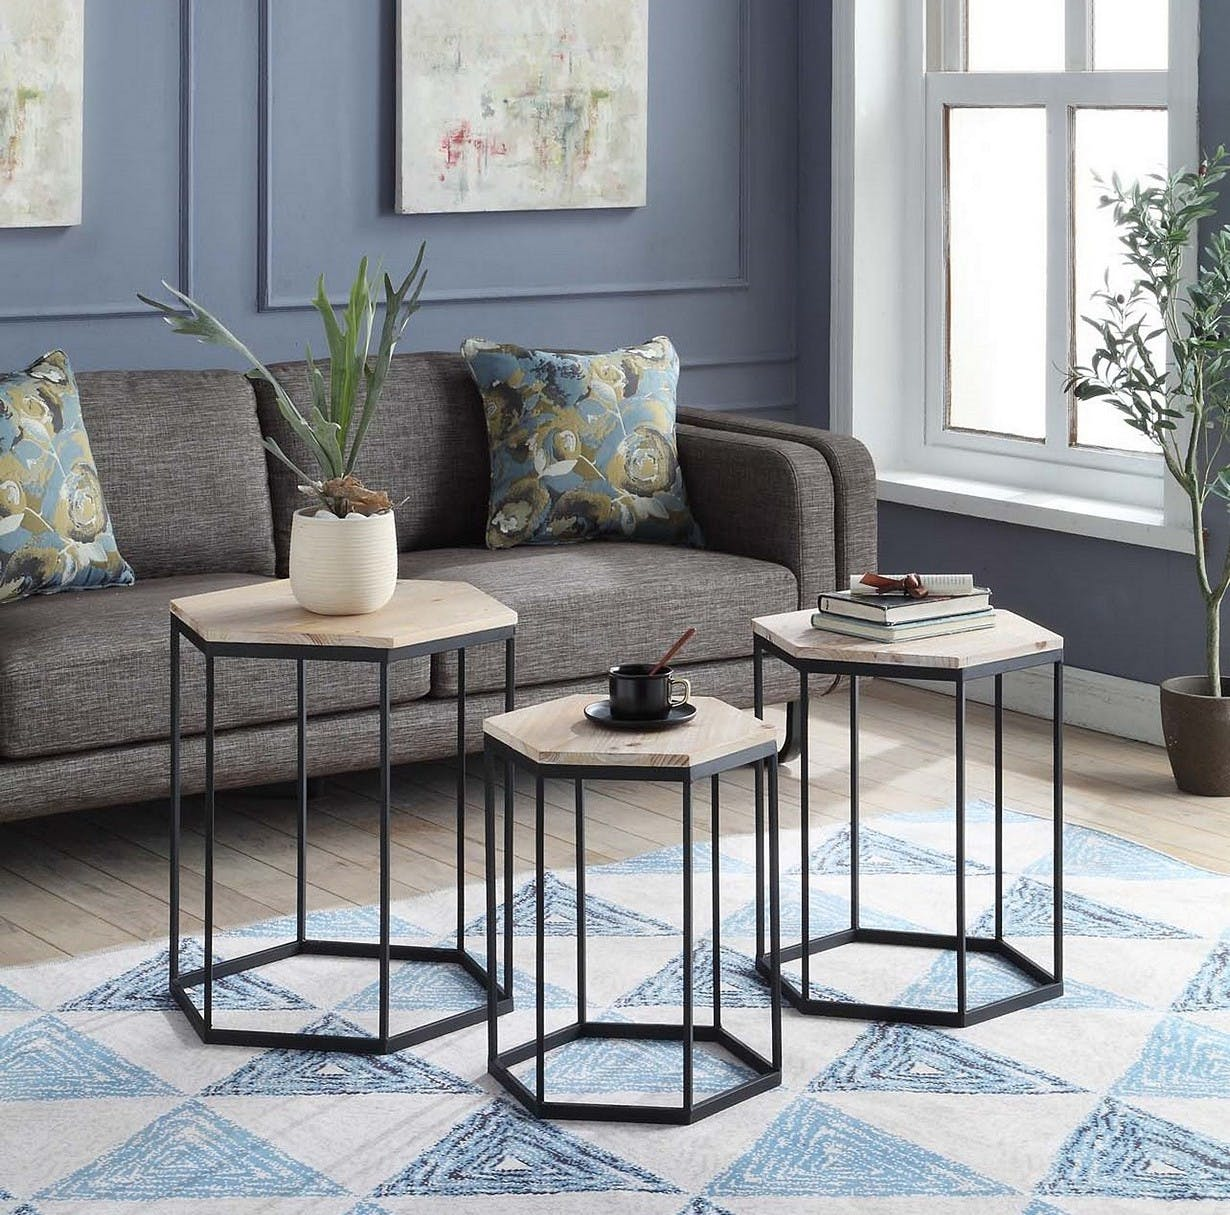 7 Coffee Table Alternatives for Small Living Rooms - PureWow